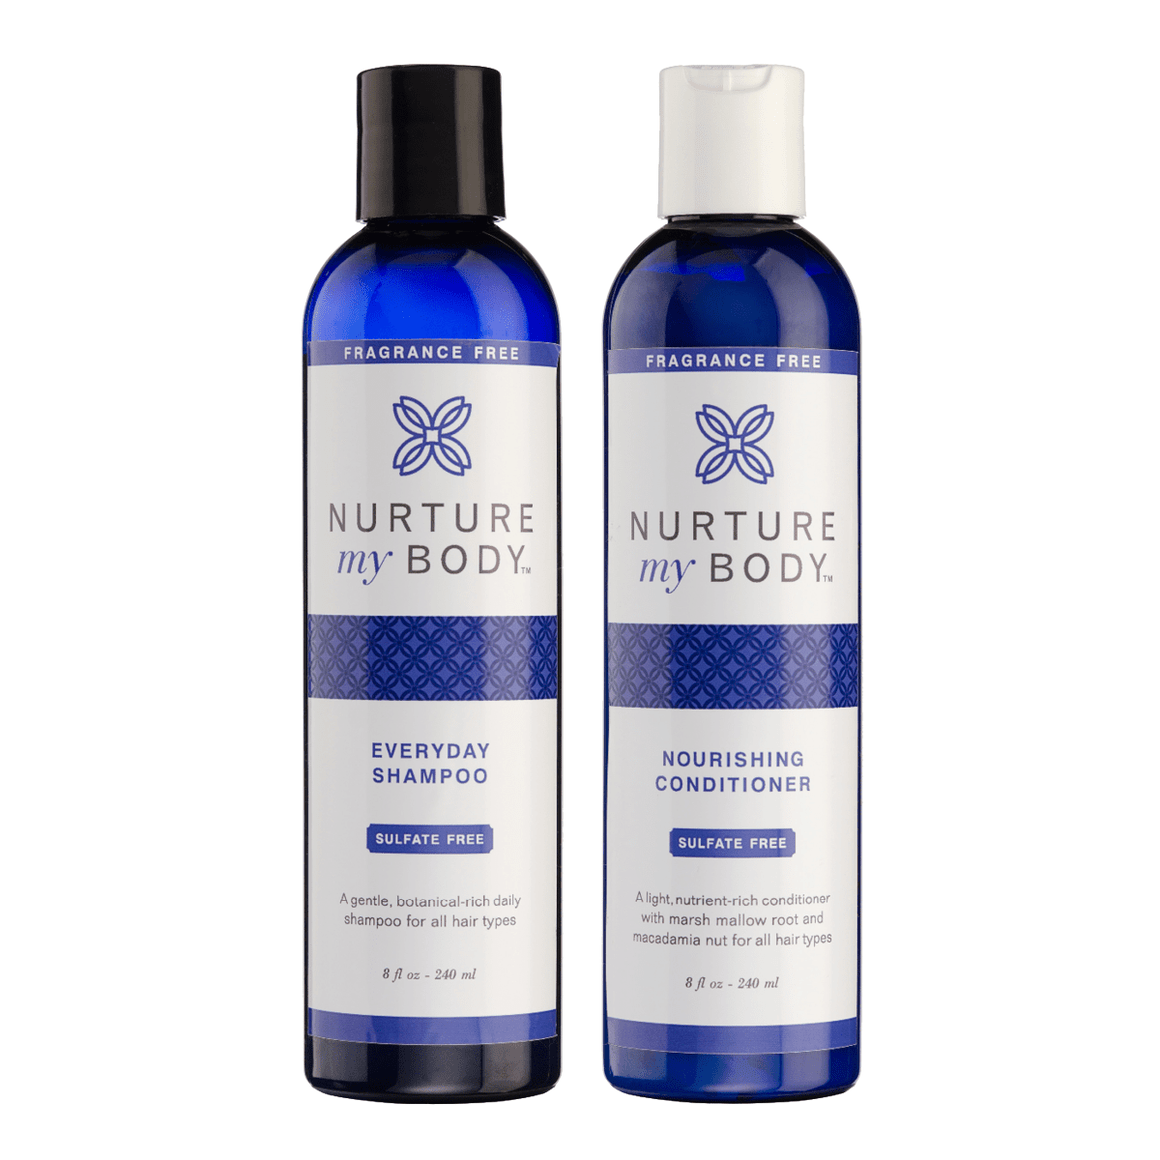 Fragrance Free Everyday Shampoo Sulfate Free and Fragrance Free Nourishing Conditioner Sulfate Free by Nurture My Body